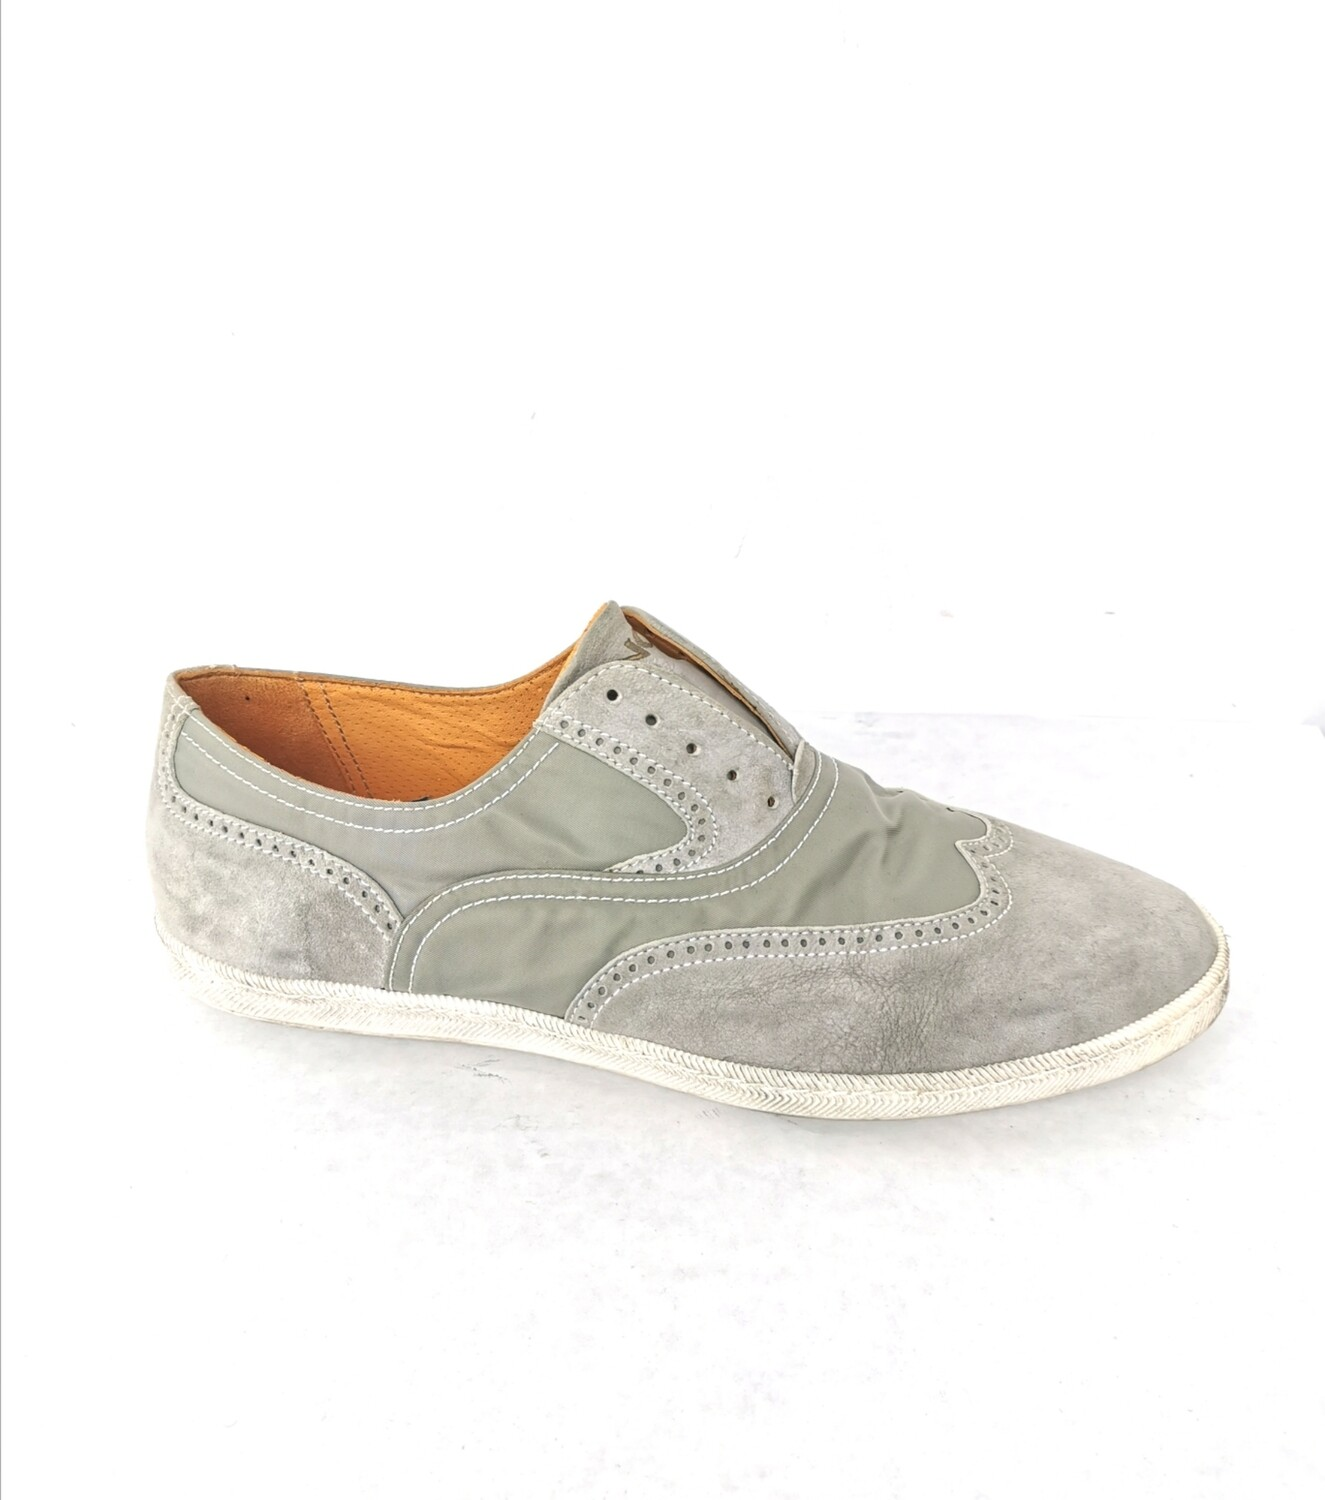 Low leather shoes